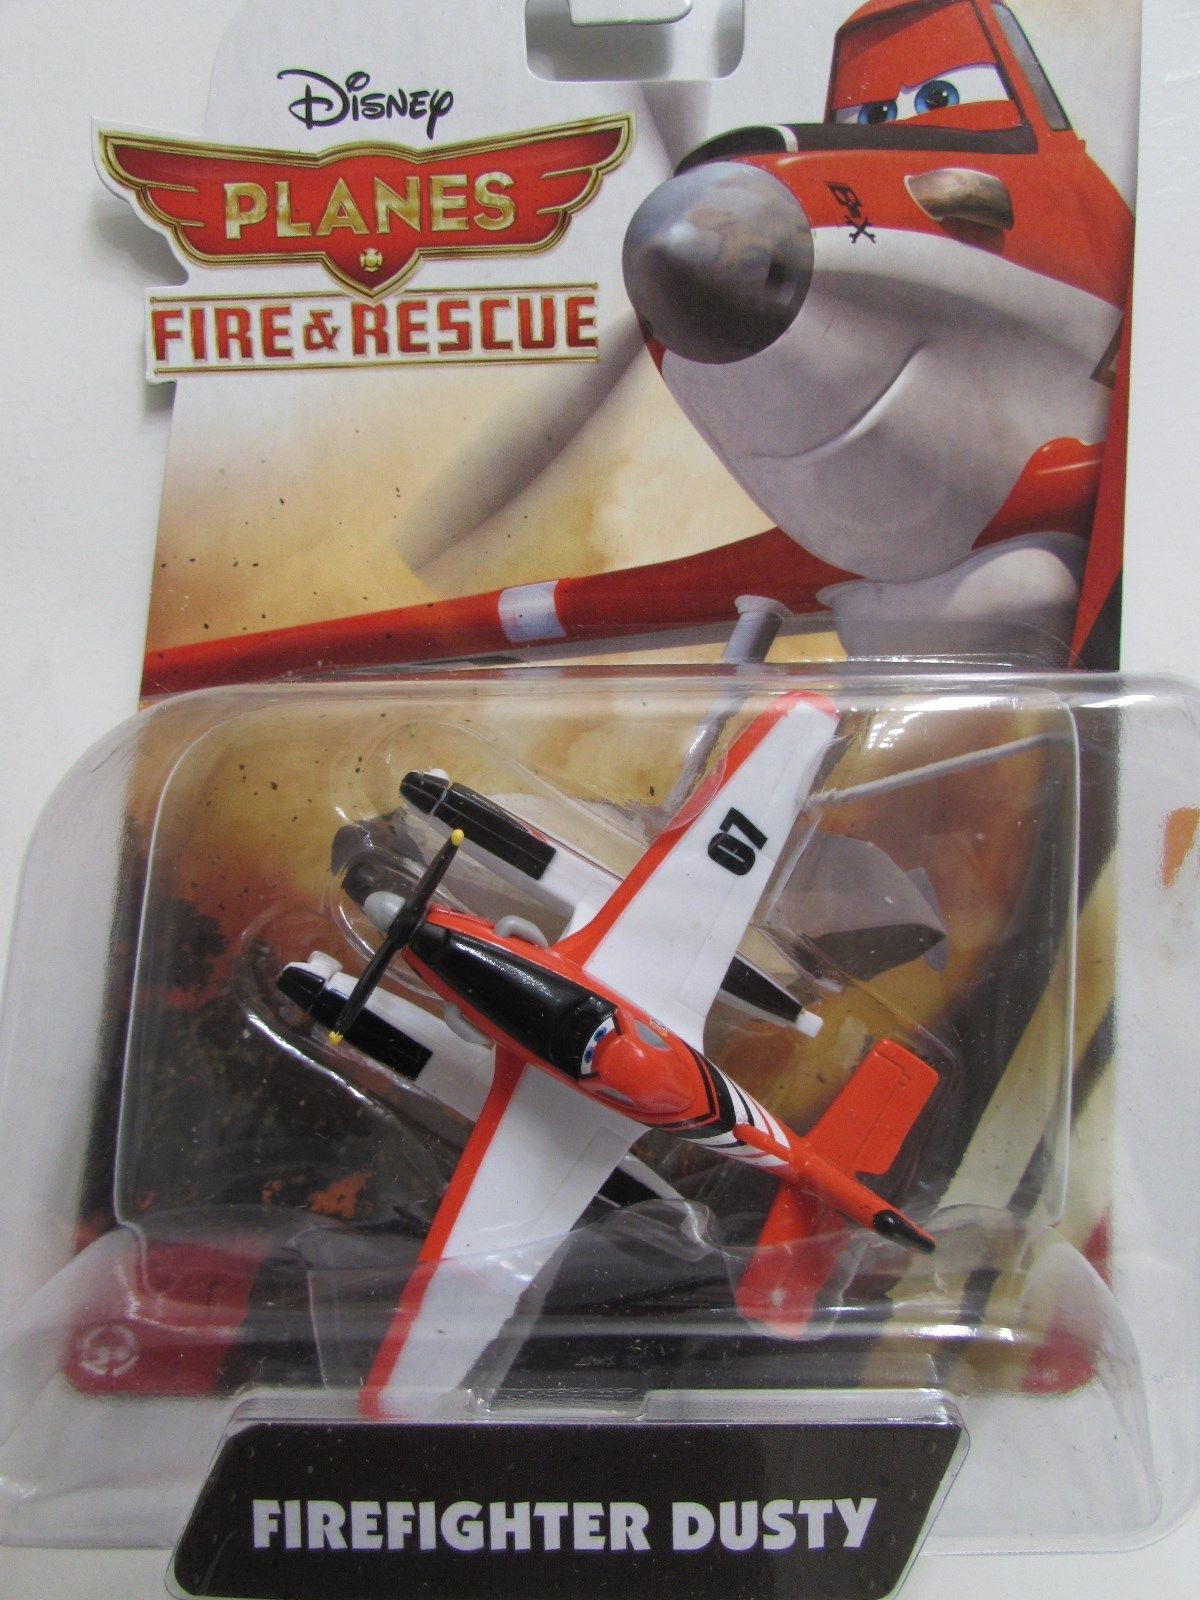 DISNEY PLANES FIRE & RESCUE FIREFIGHTER DUSTY